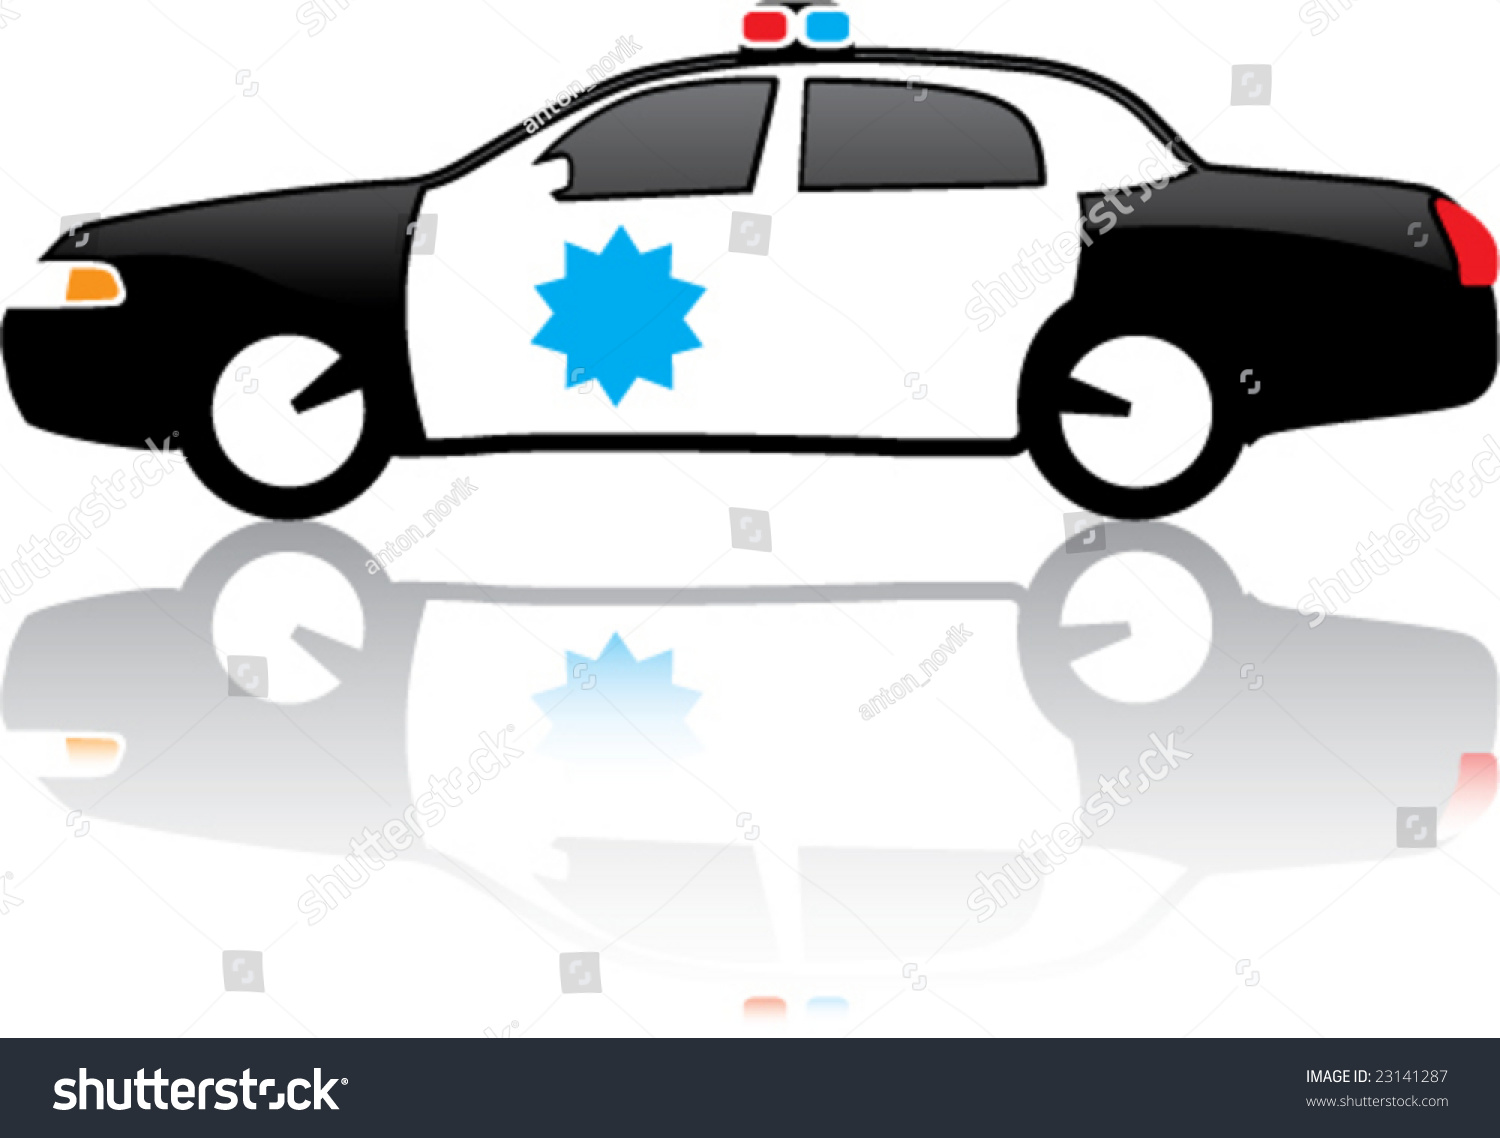 vehicle diagram clip art jayco tent trailer wiring glossy police car vector illustration 23141287